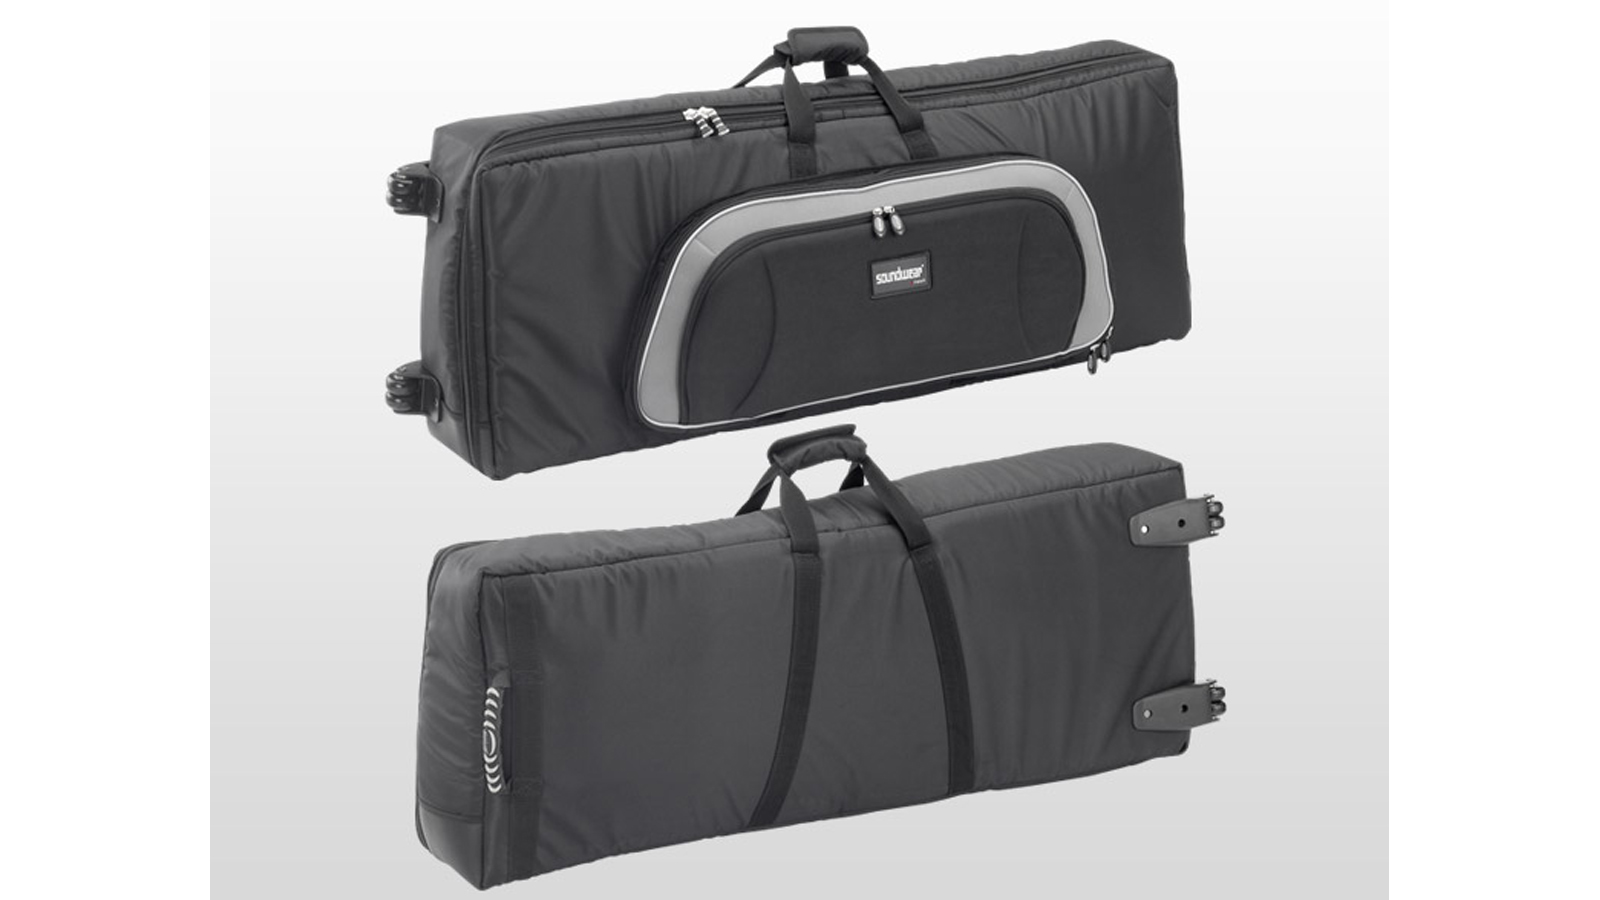 Soundwear Keyboard Bag Professional 142 x 39 x 15 cm